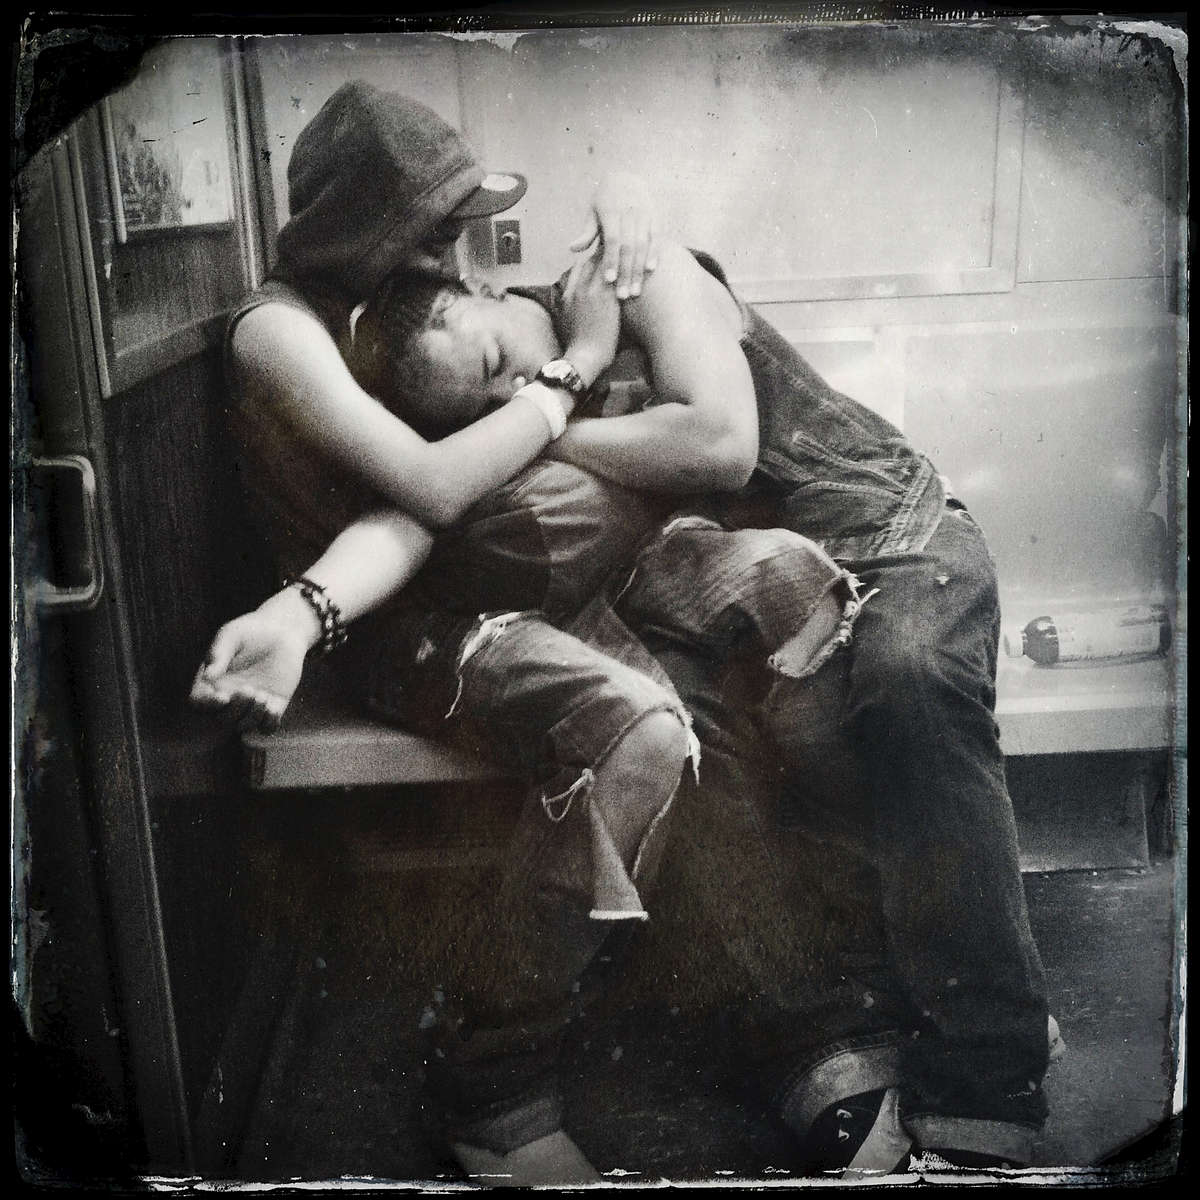 Lovers in subway.